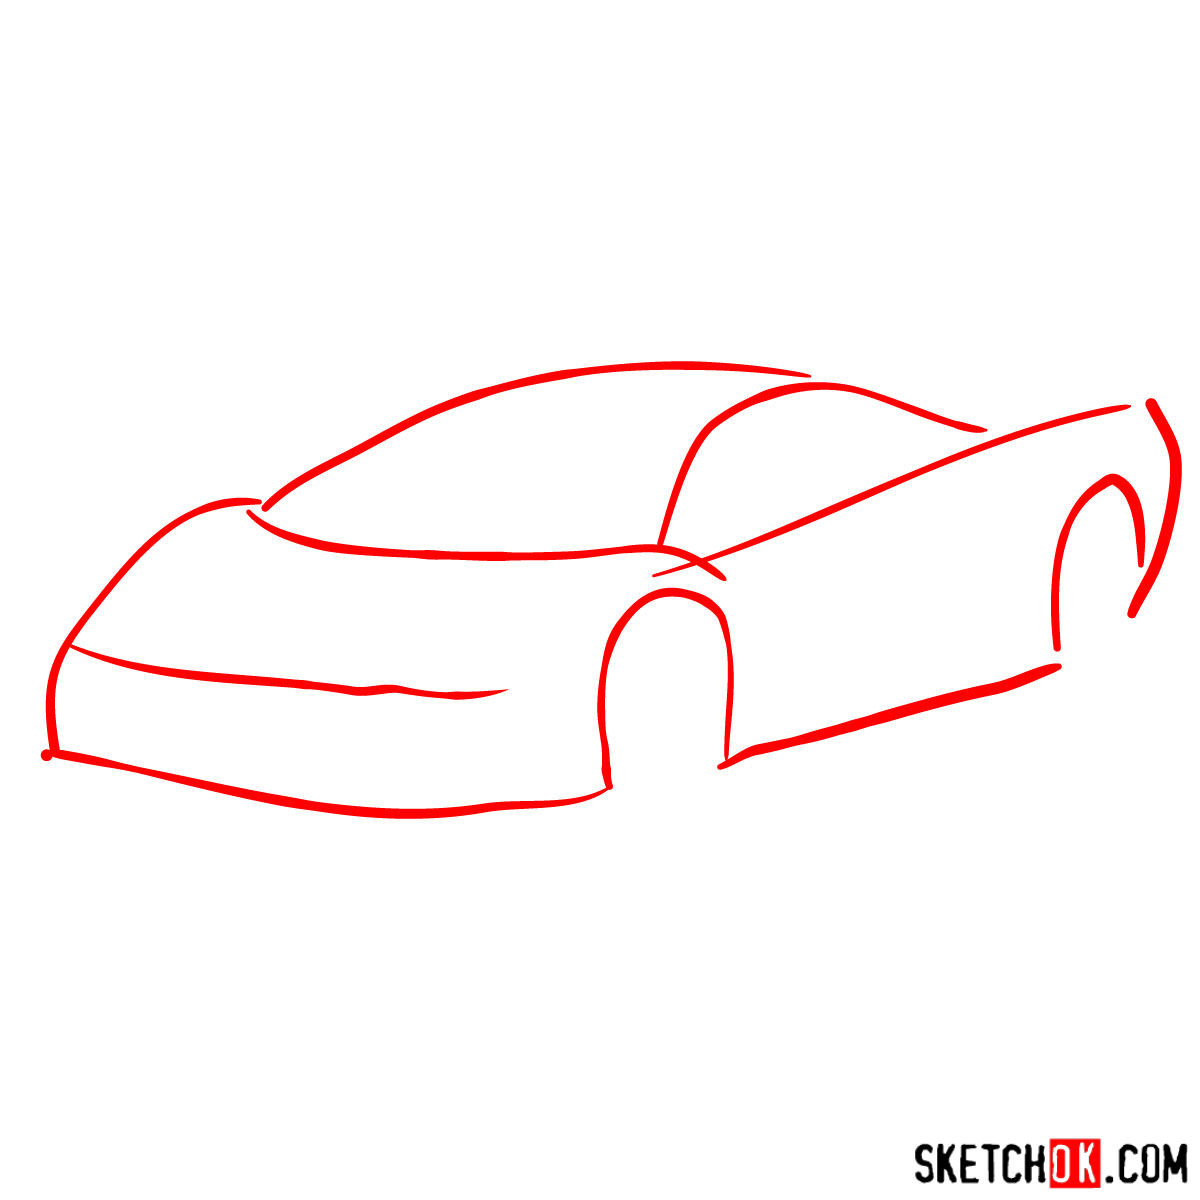 How to draw SSC Ultimate Aero TT 2006 - step 01